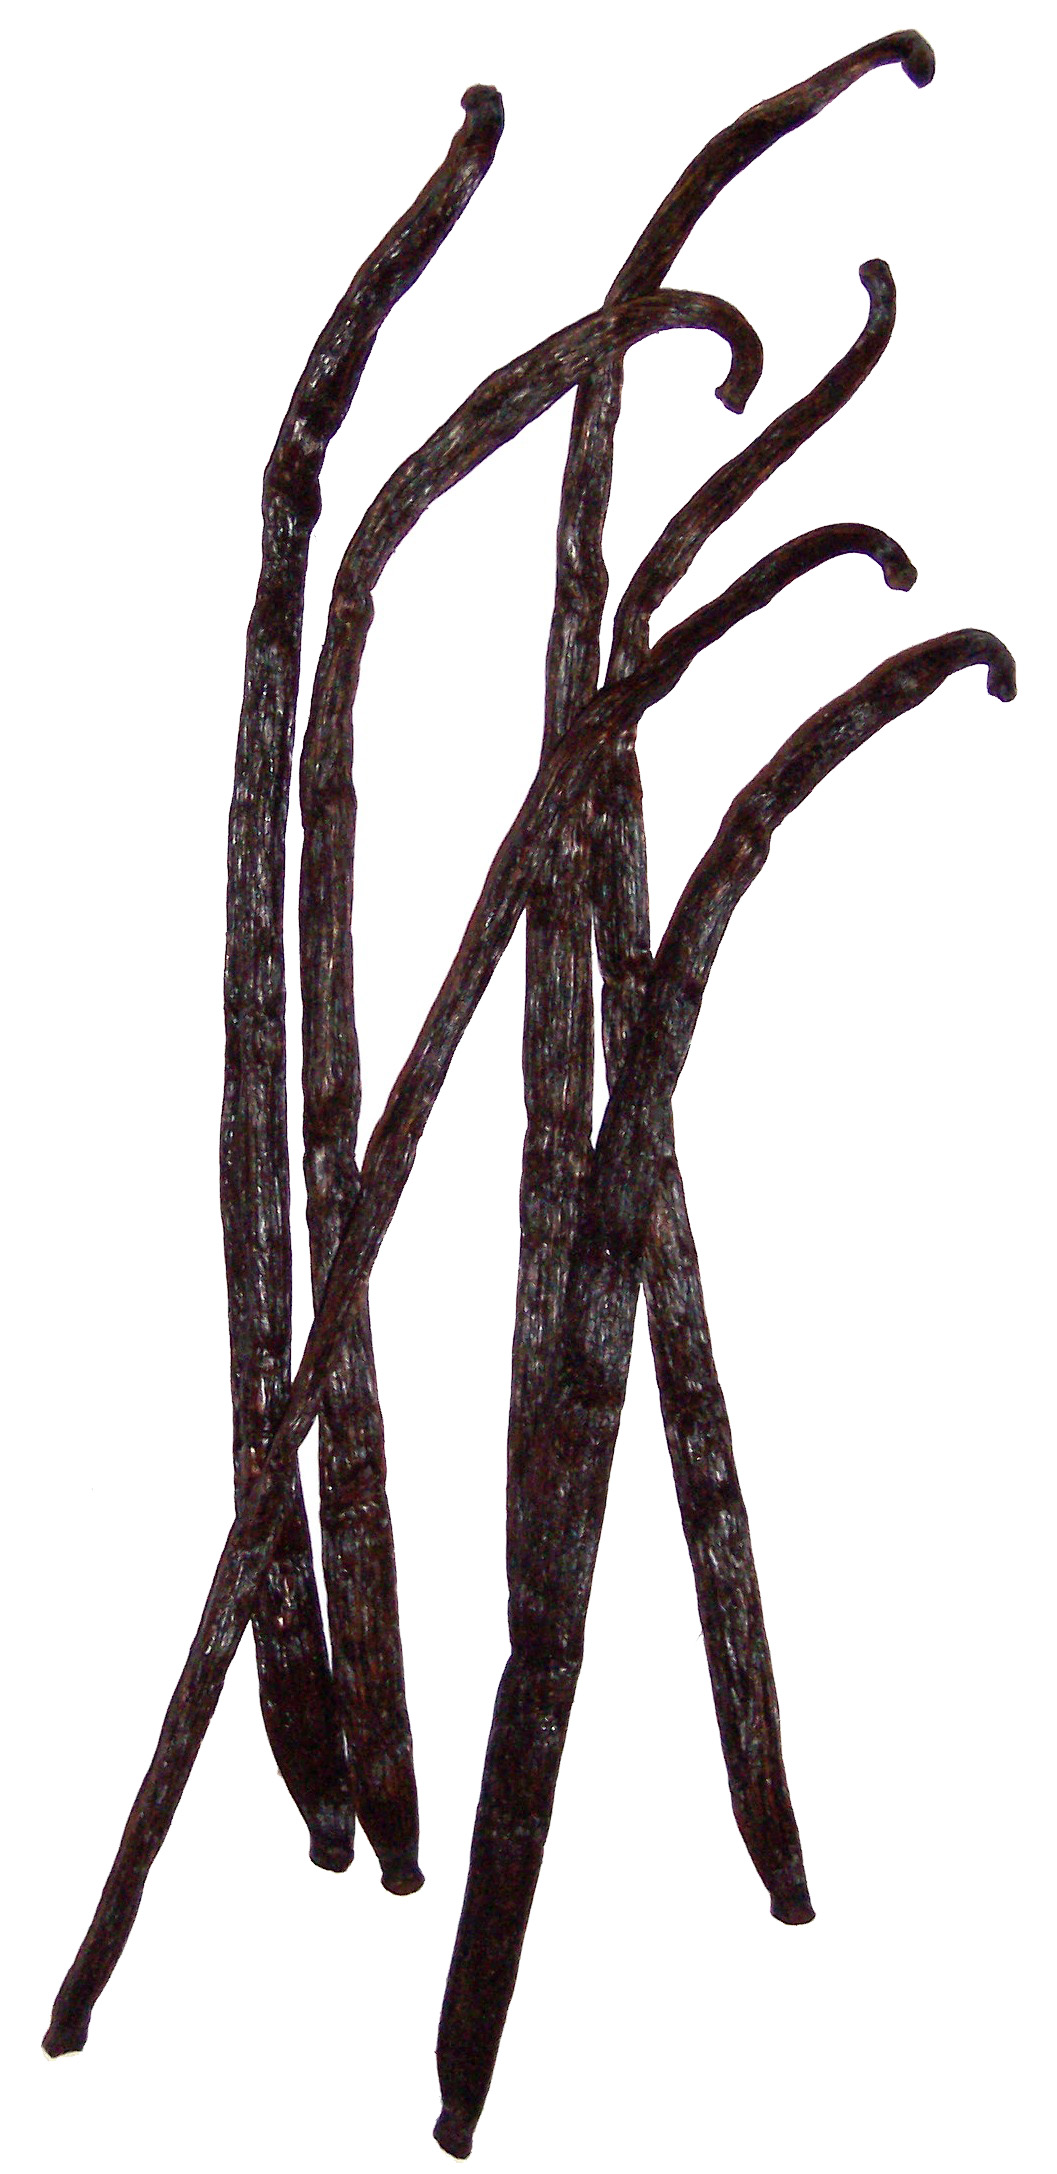 http://upload.wikimedia.org/wikipedia/commons/3/30/Vanilla_6beans.JPG